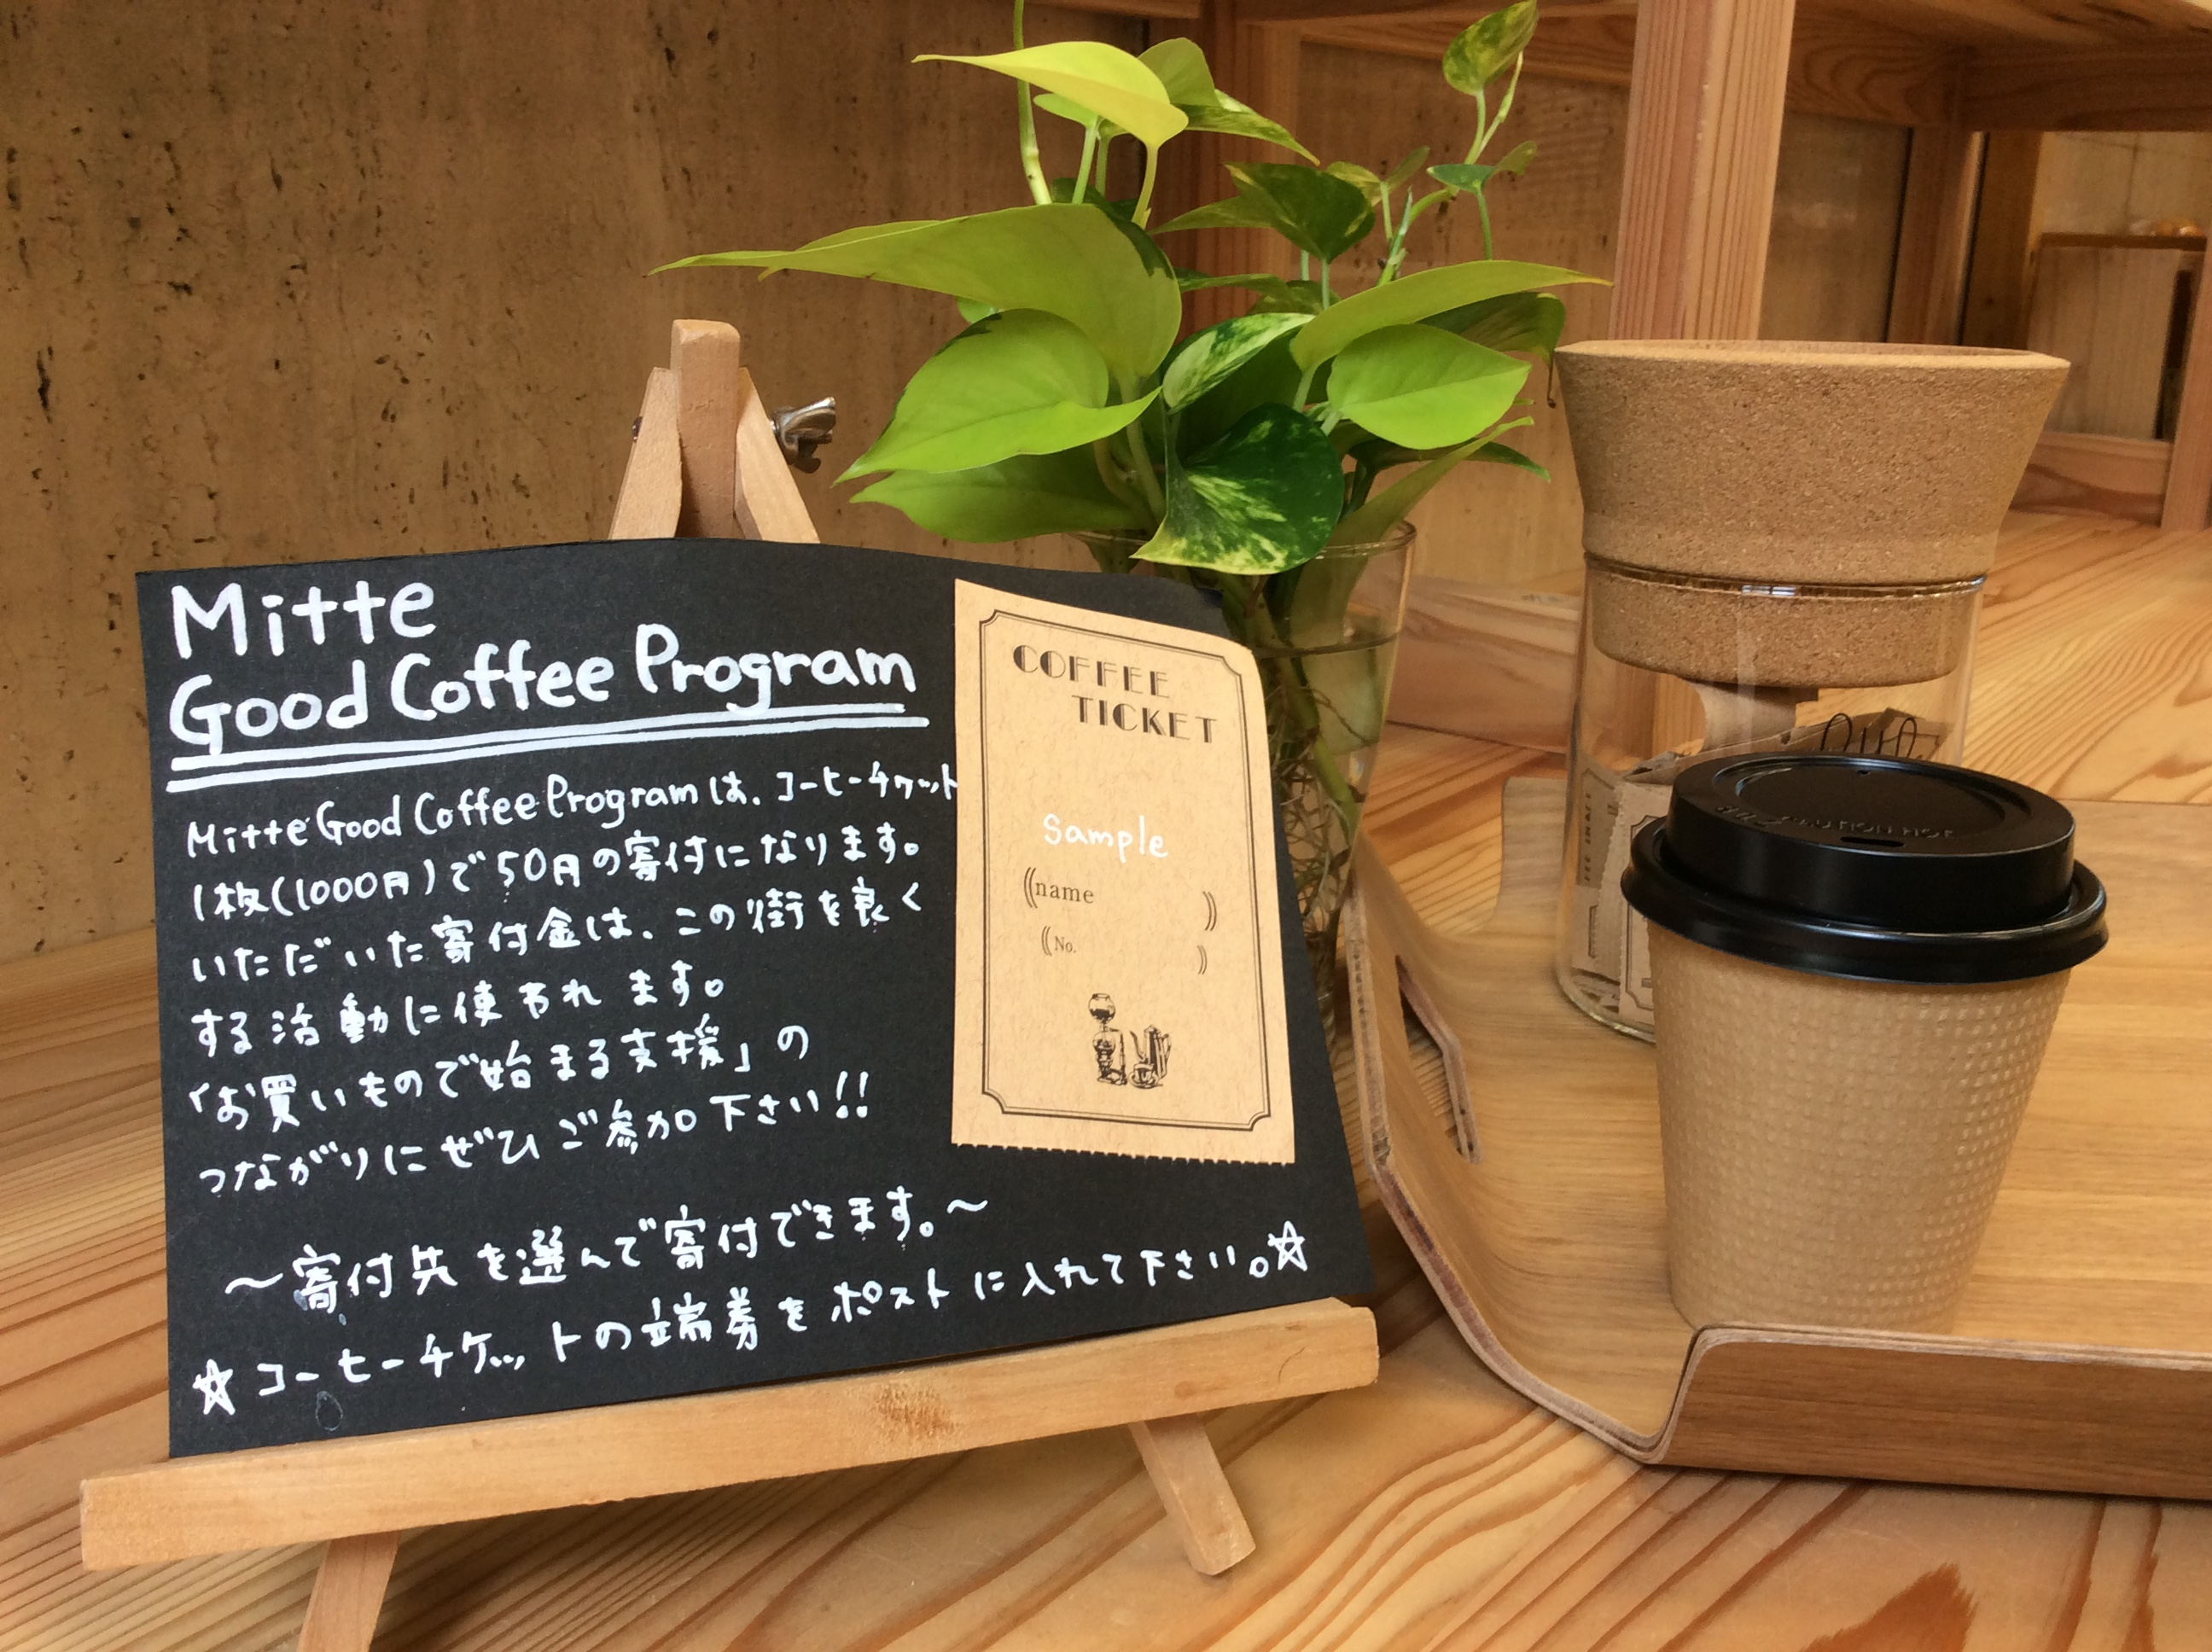 Mitte Good Coffee Program